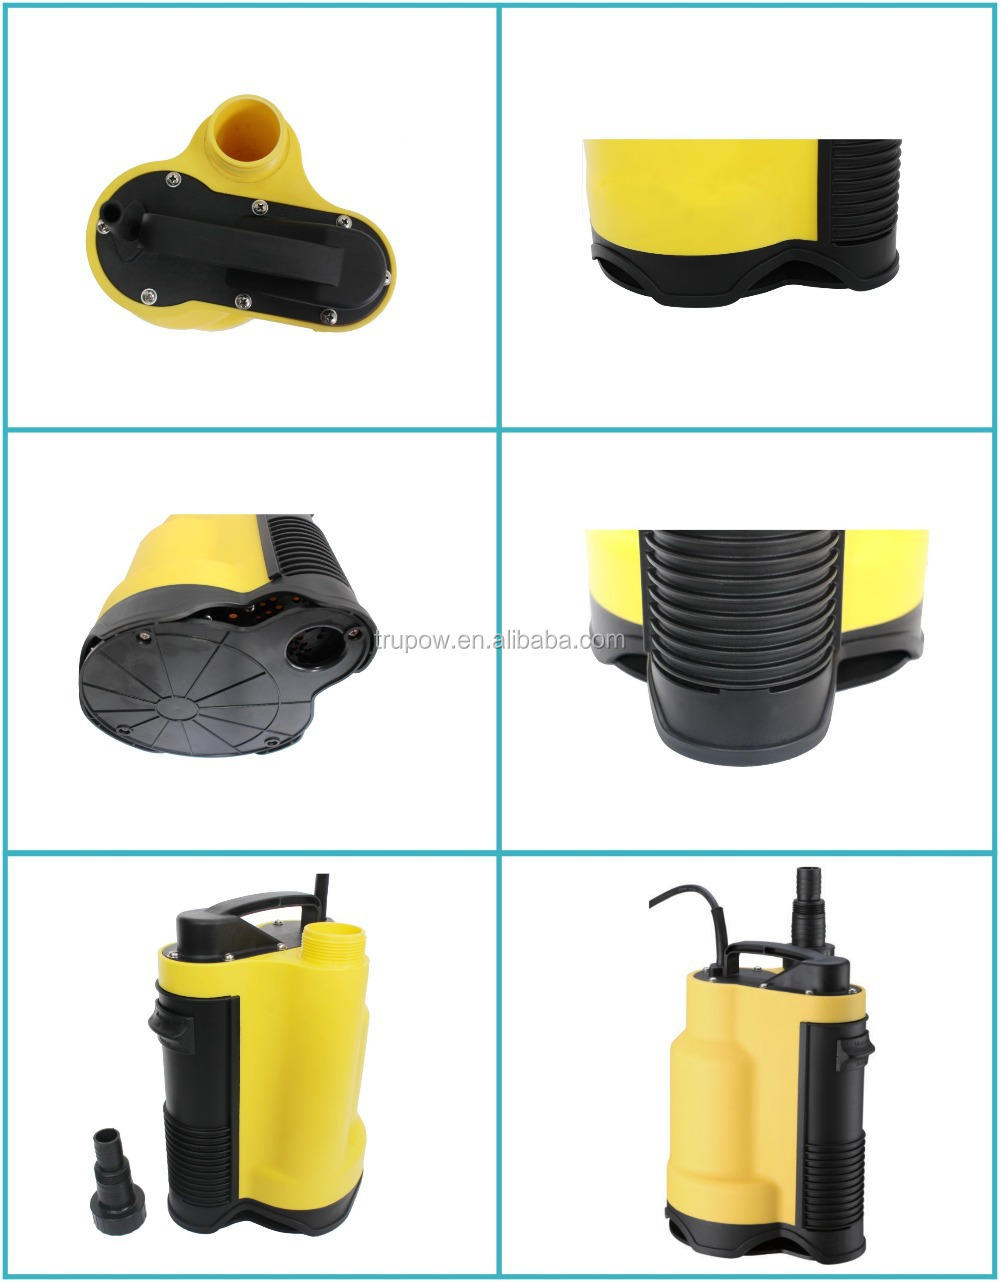 Exclusive Universal Design Built-in / Integrated float switch submersible pump dirty water price